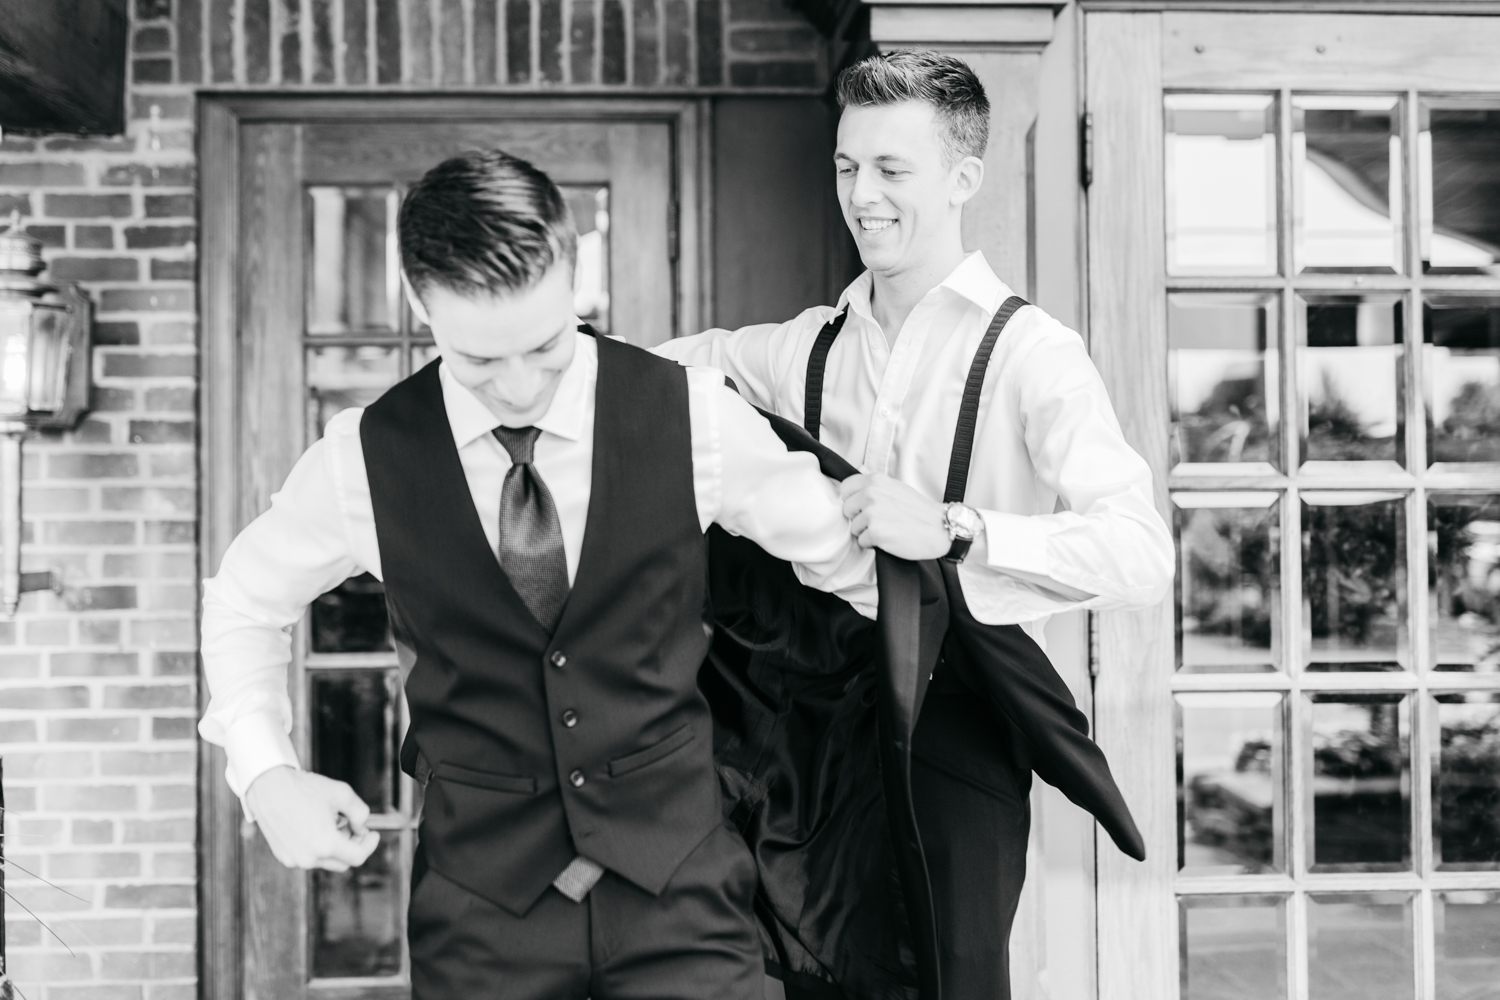 Groomsman helping groom put on jacket